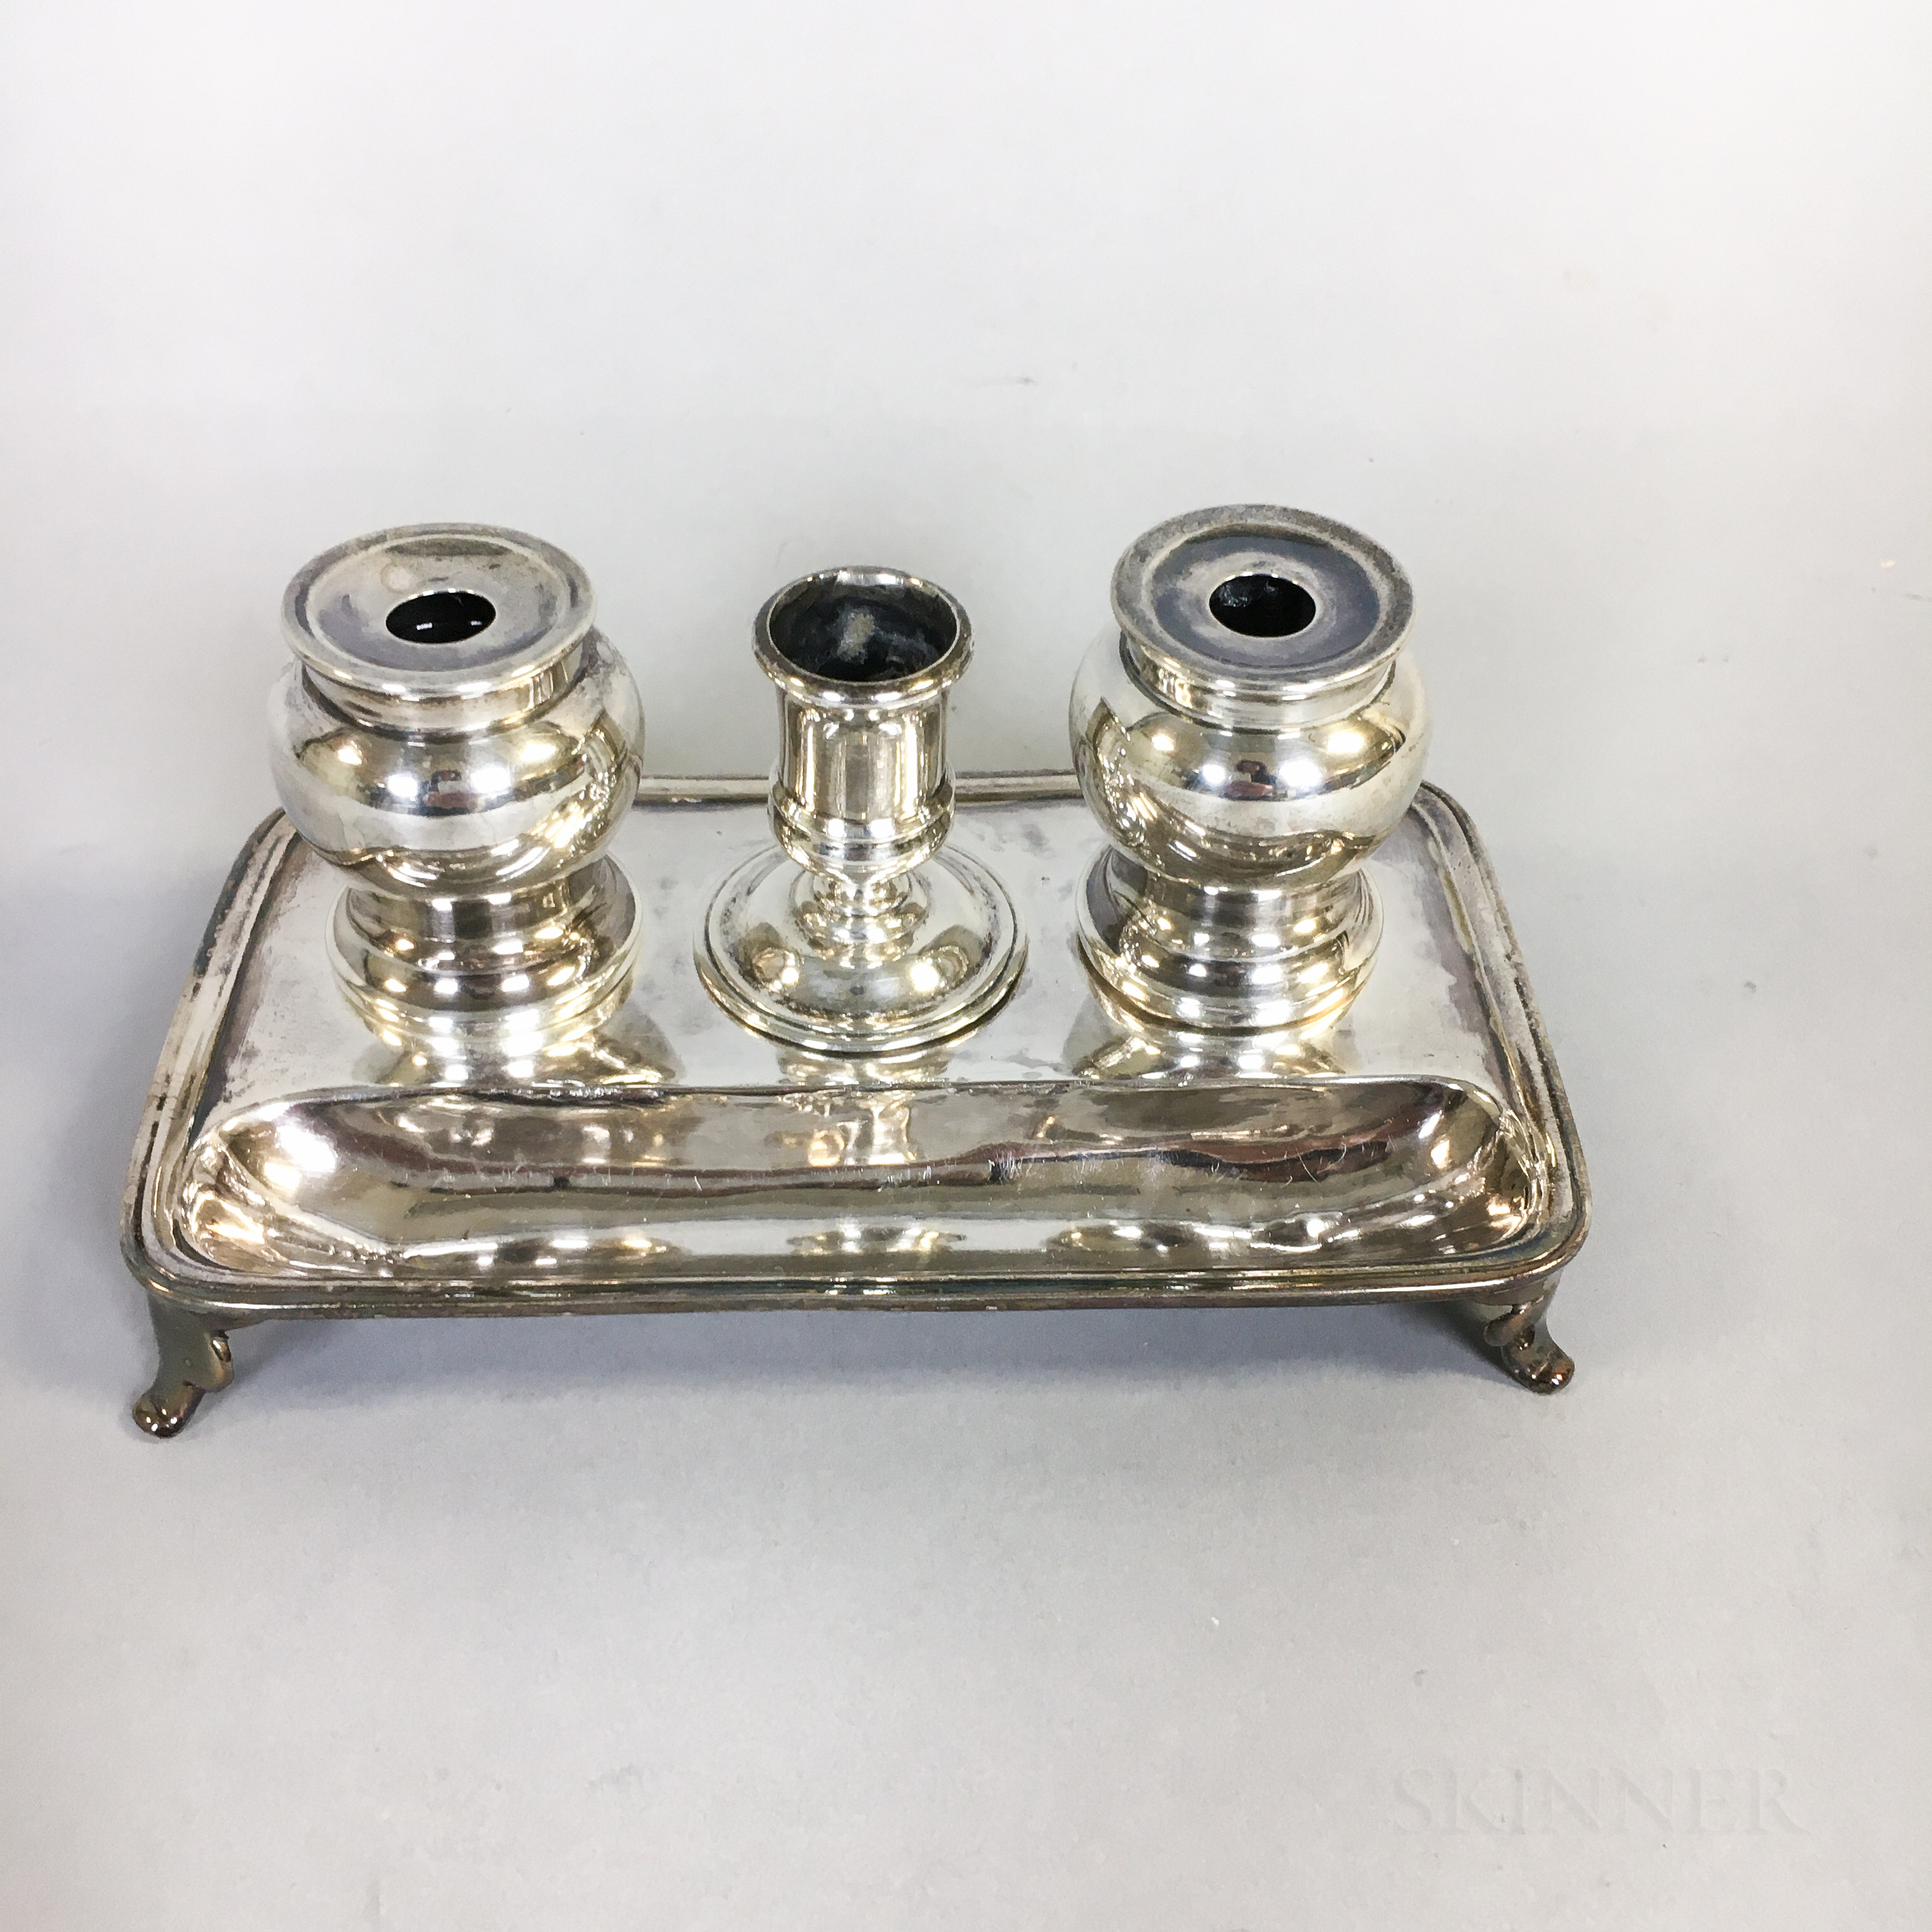 George II Sterling Silver Ink Stand